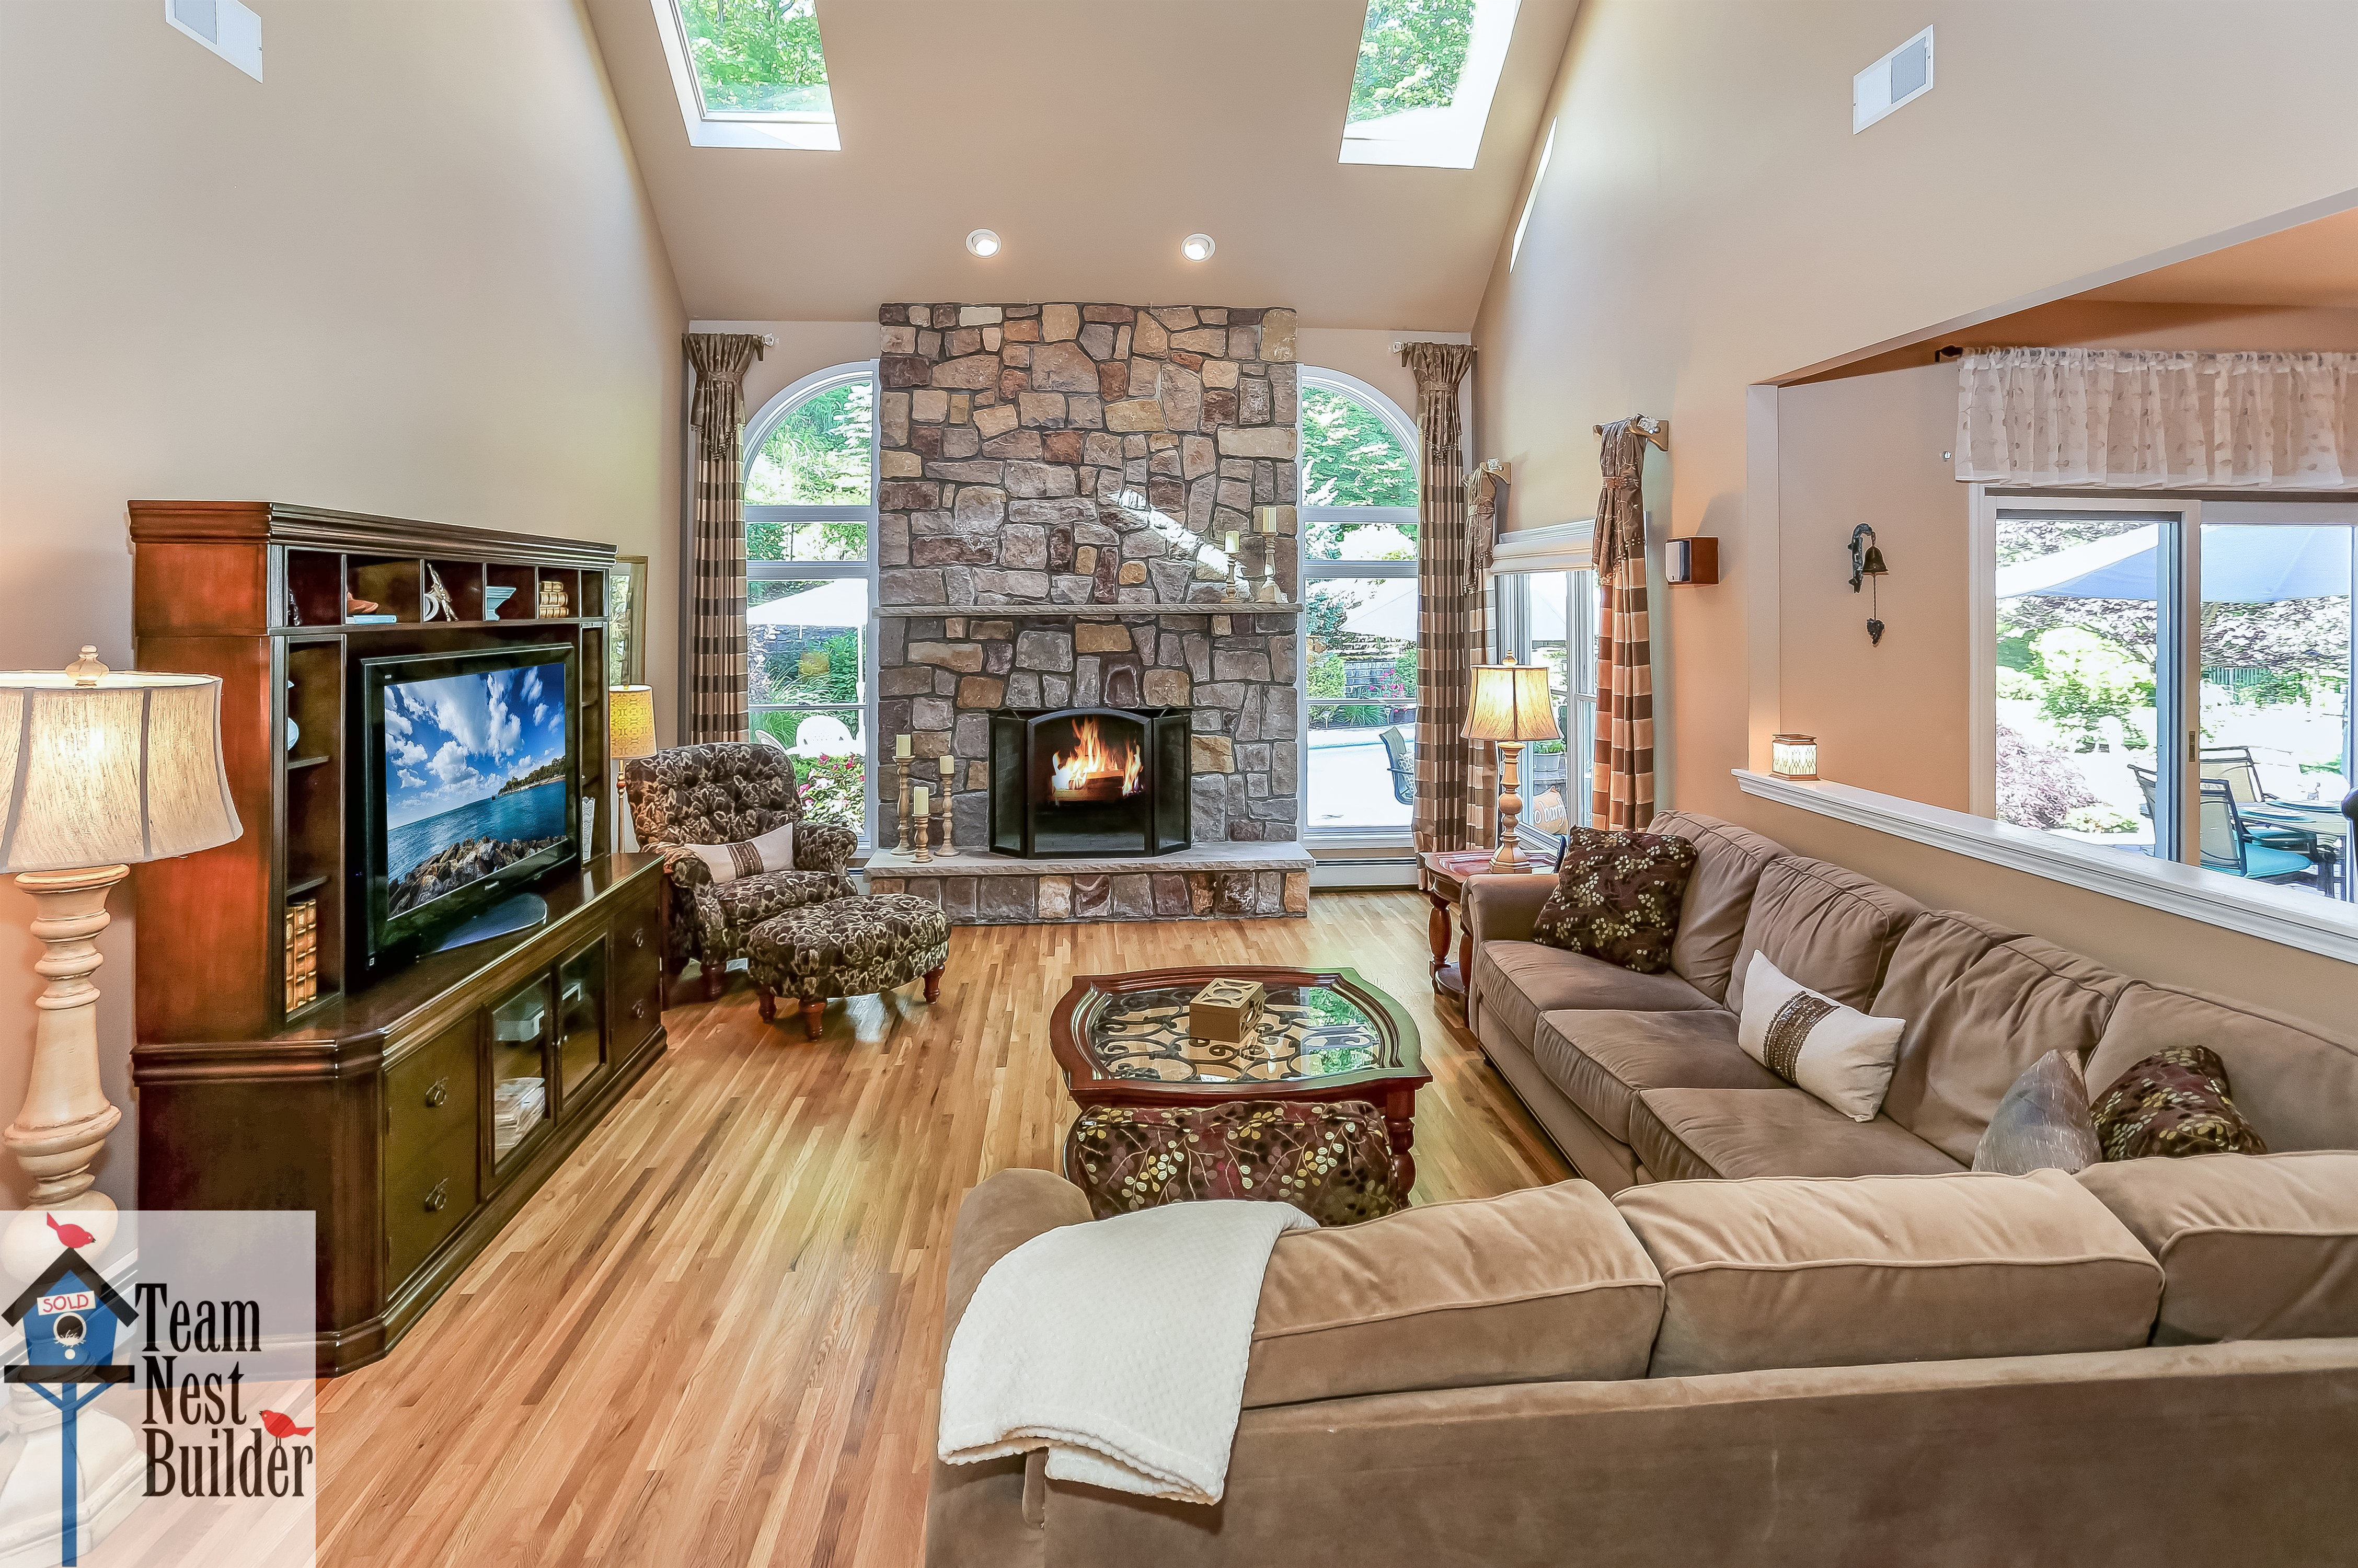 Check out the trophy floor-to-ceiling fireplace in the family room!